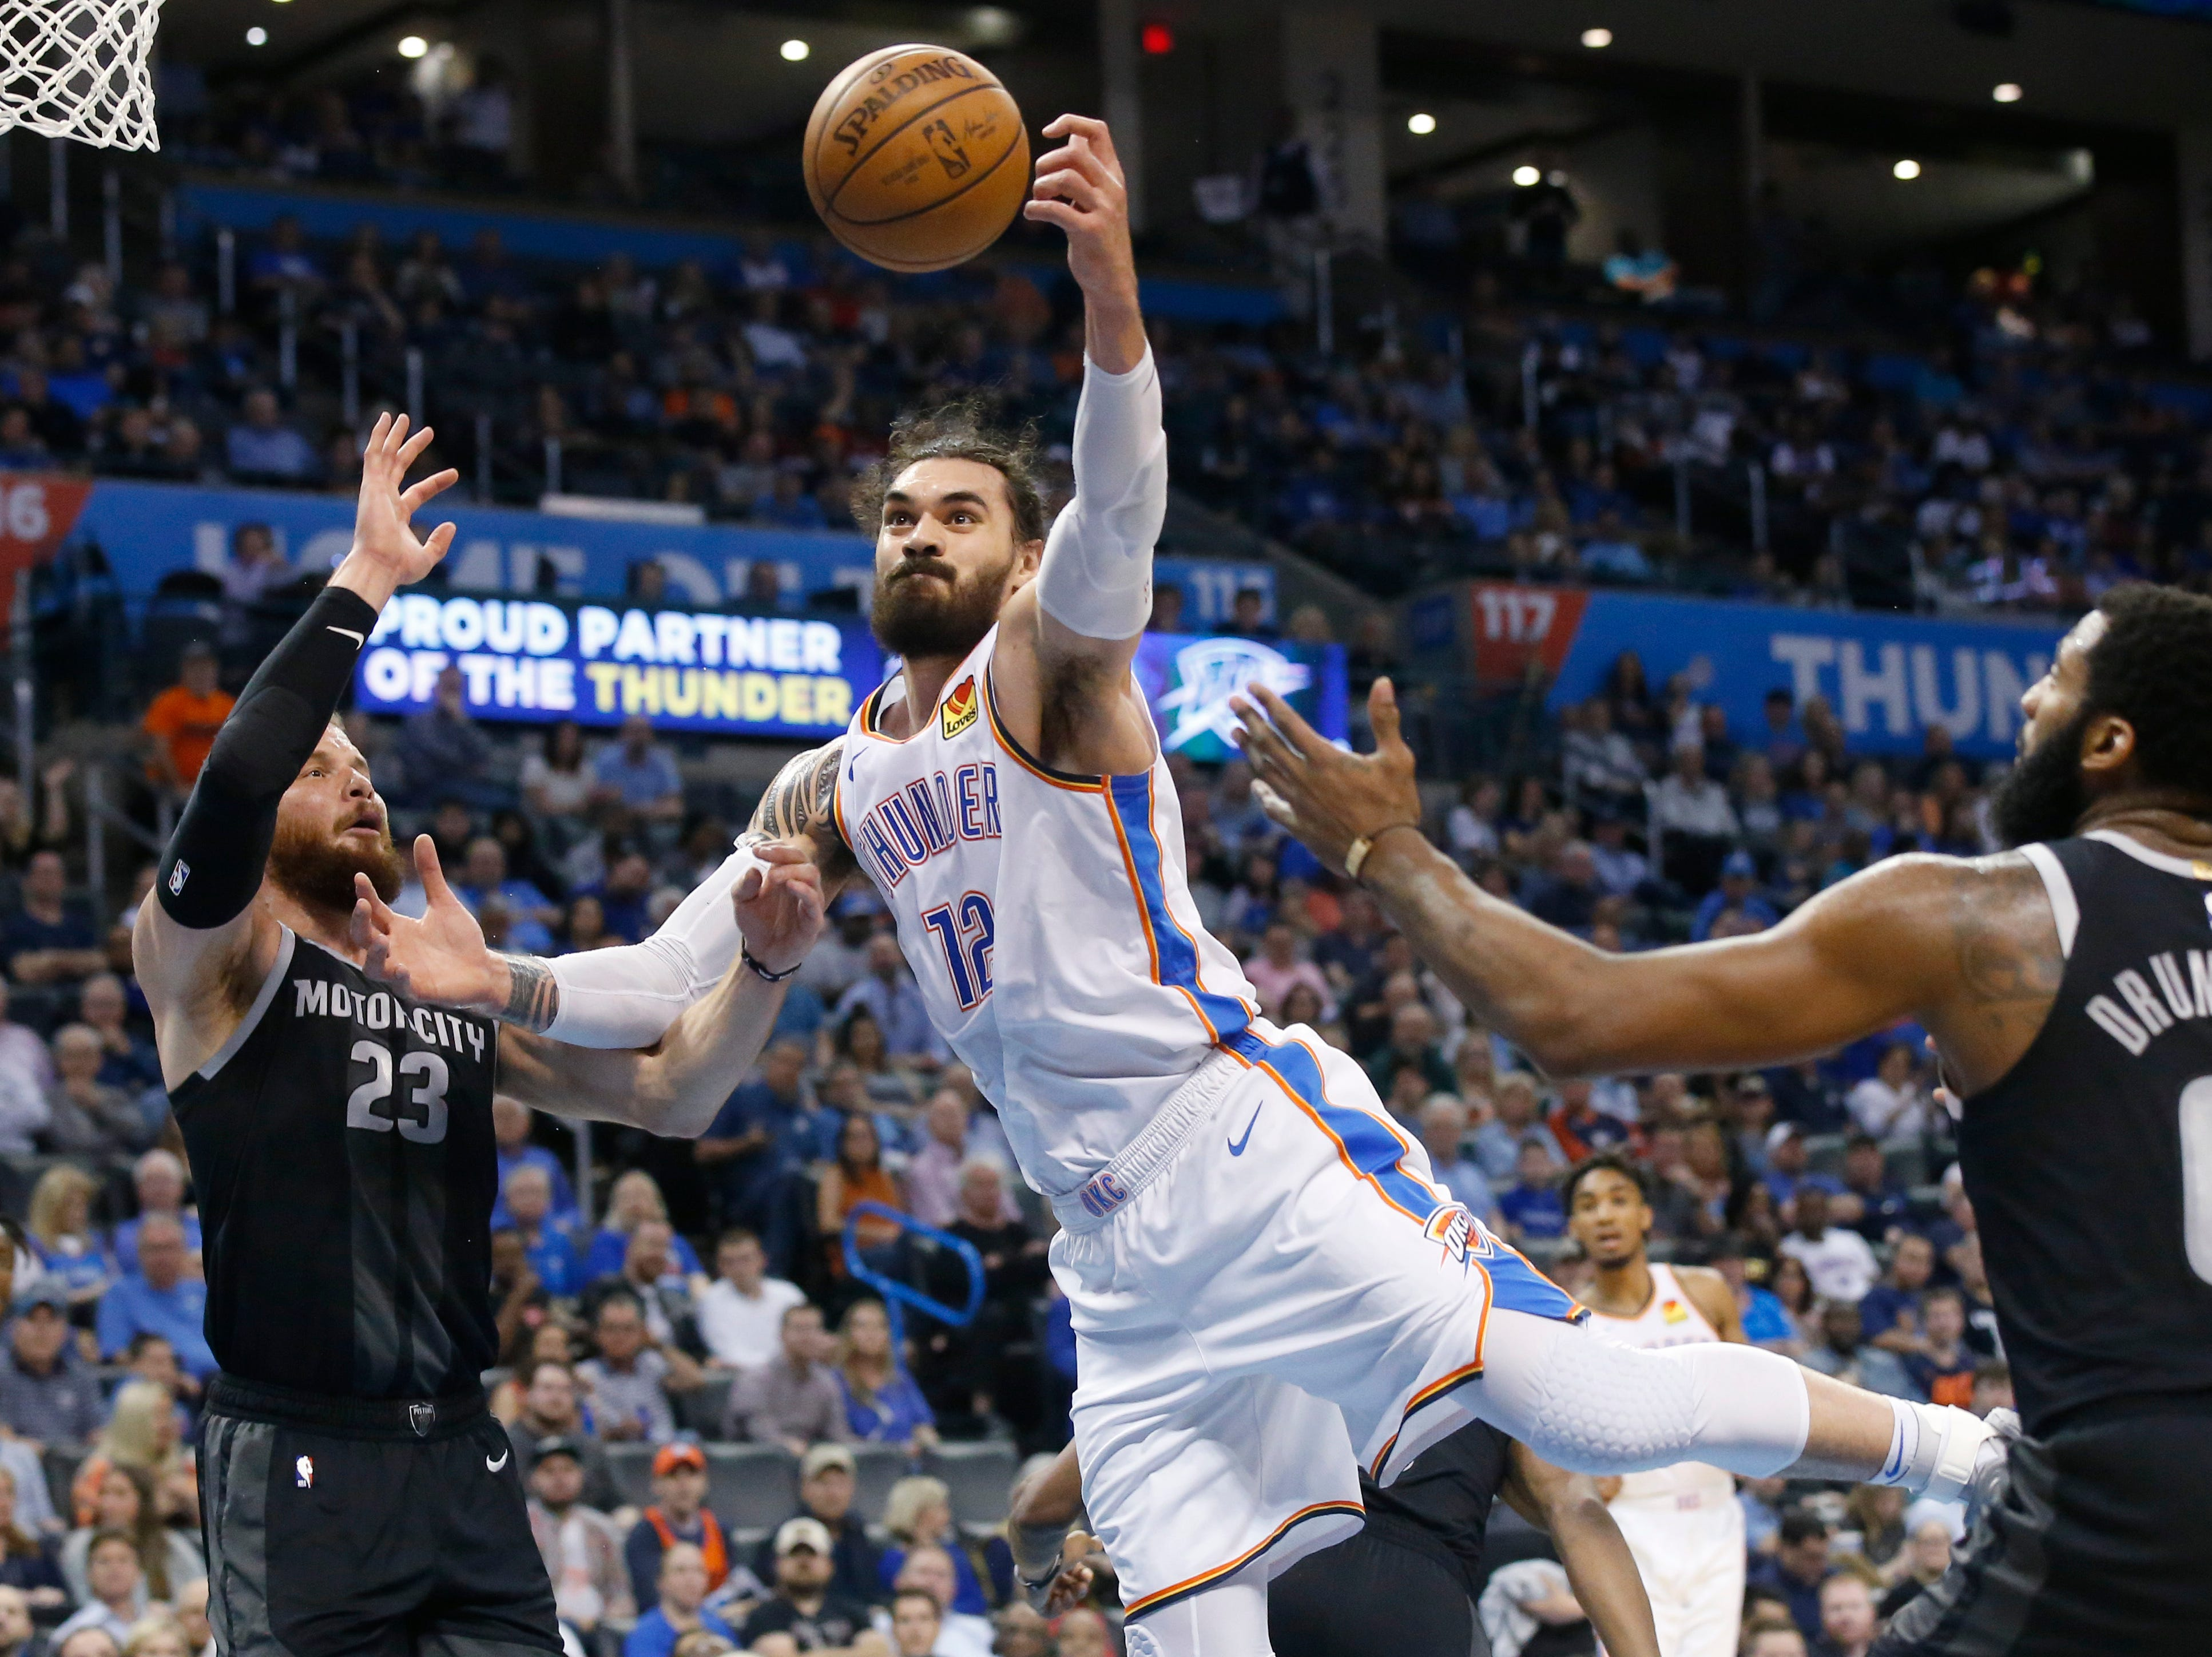 Oklahoma City Thunder center Steven Adams (12) reaches for a rebound between Detroit Pistons forward Blake Griffin (23) and center Andre Drummond (0) during the second half.